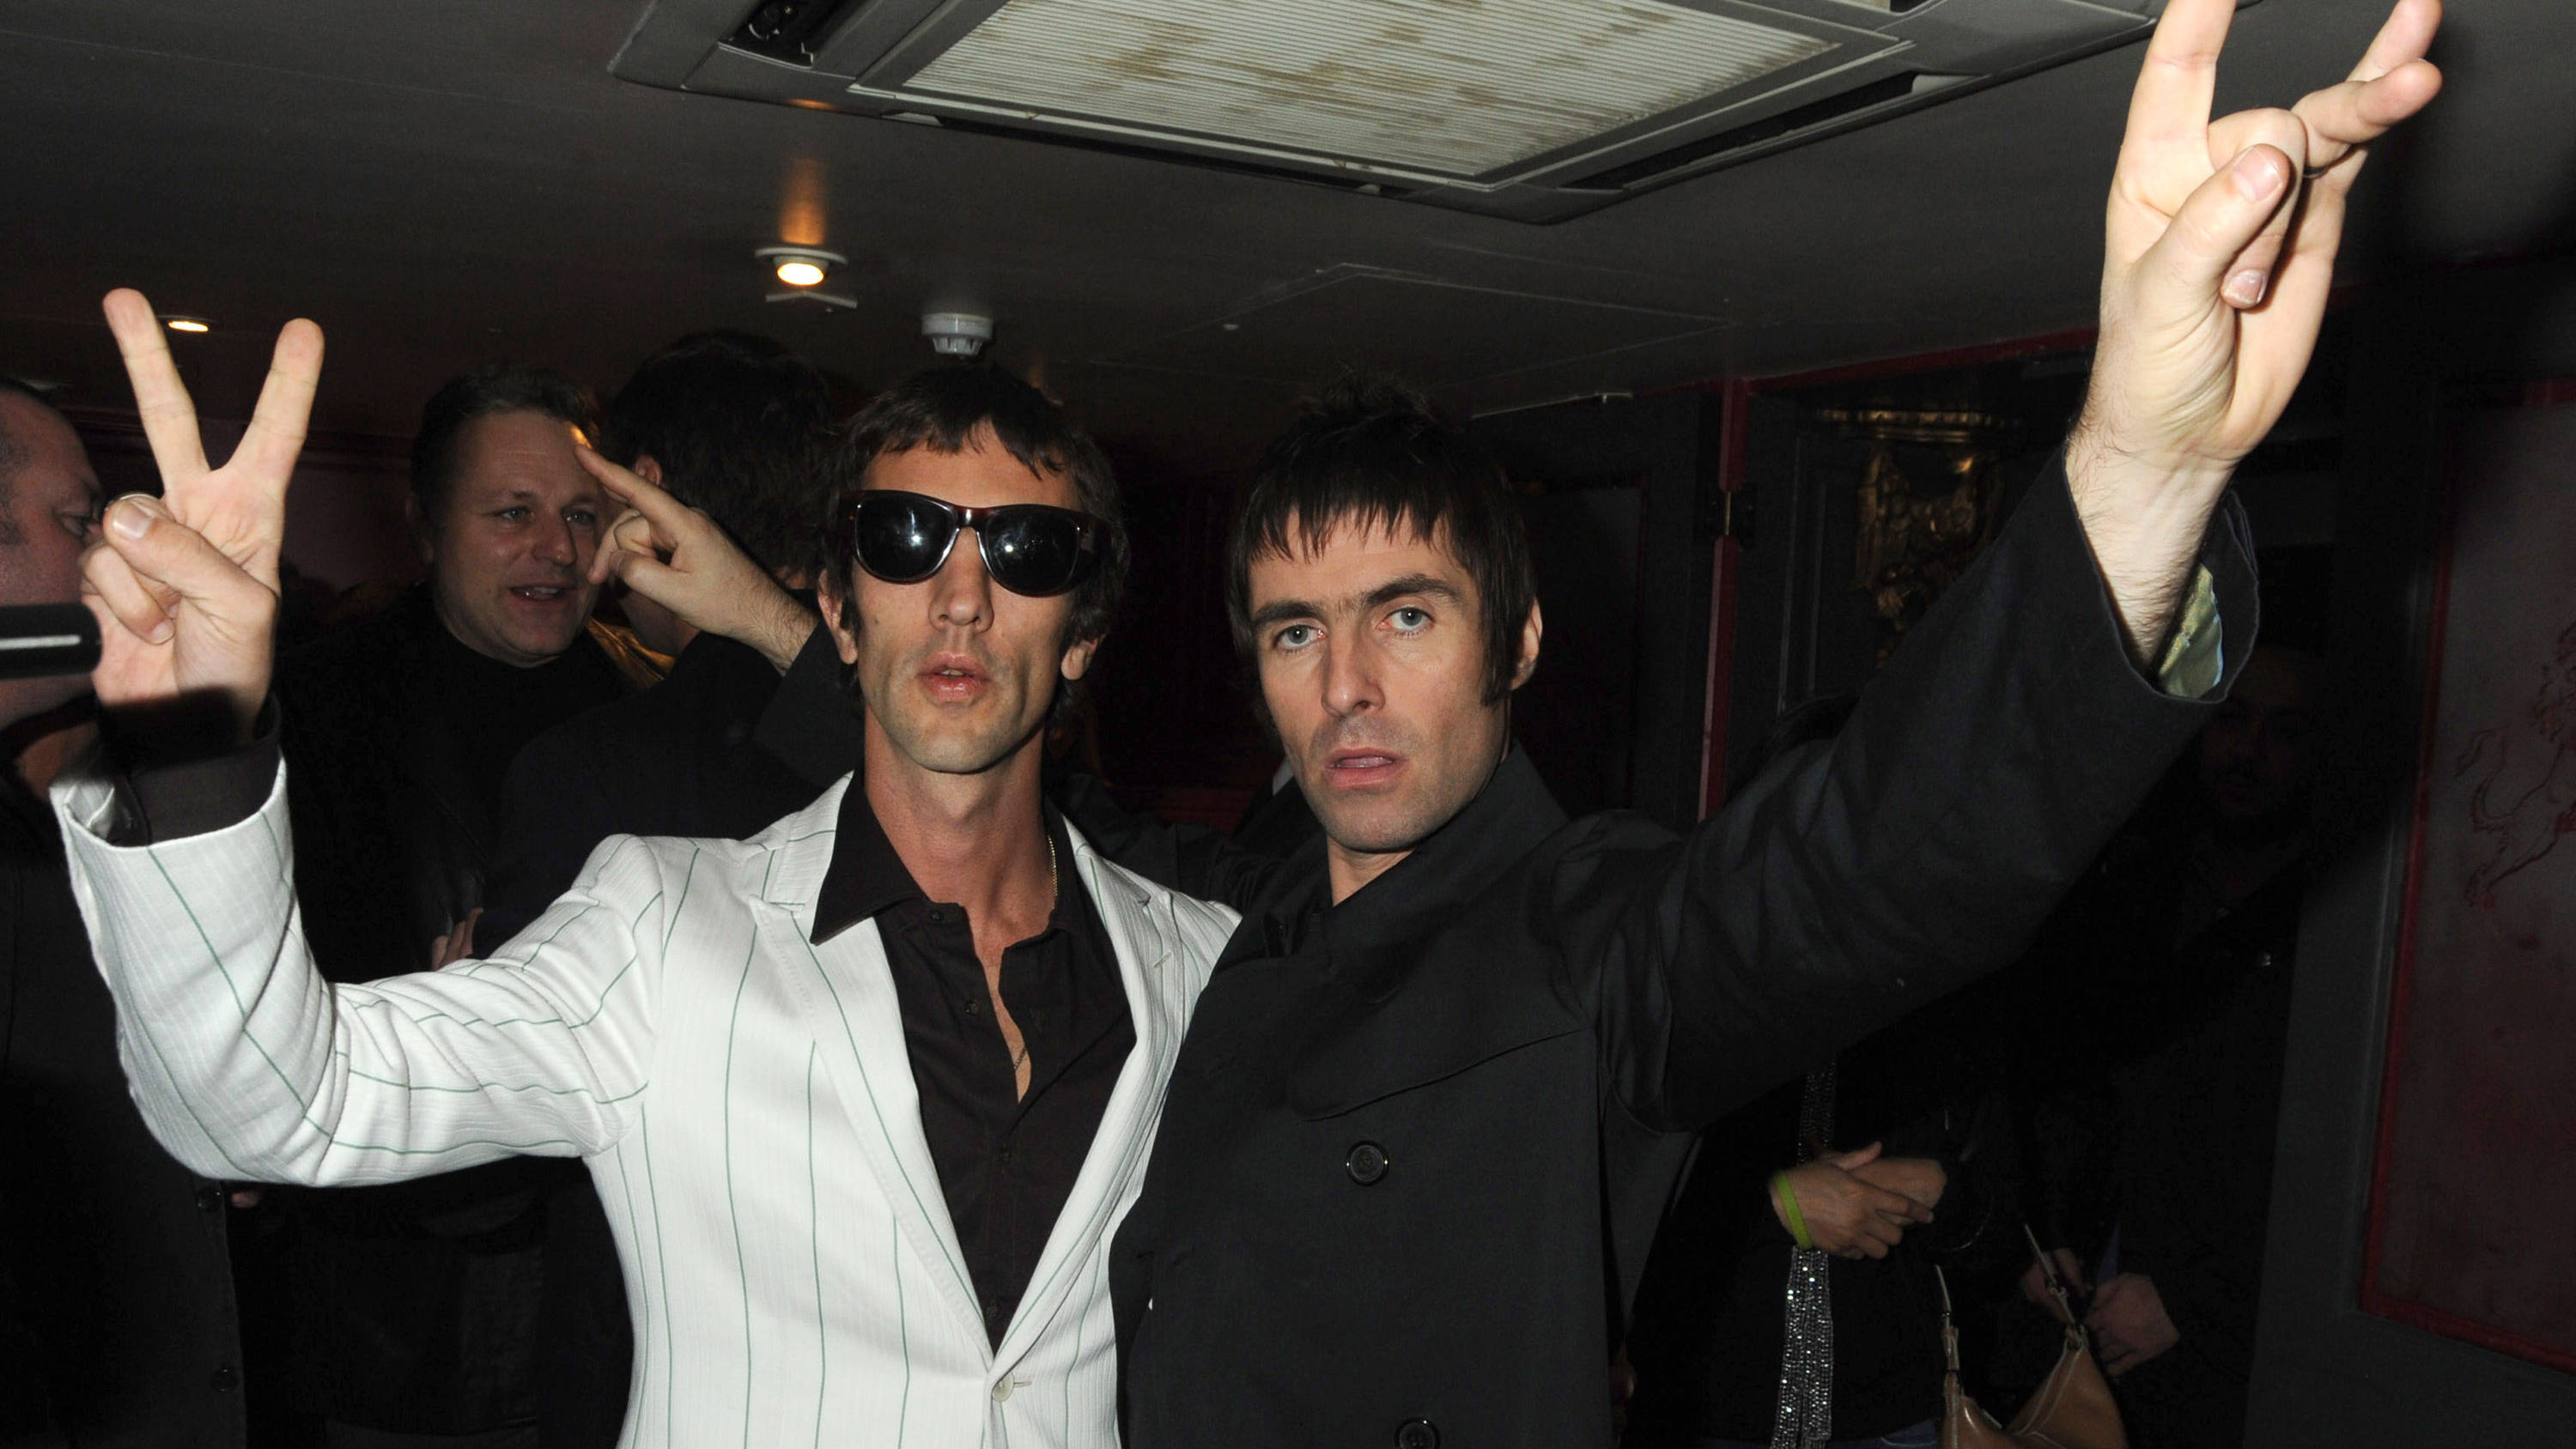 Why Noel Gallagher dedicated Cast No Shadow to Richard Ashcroft